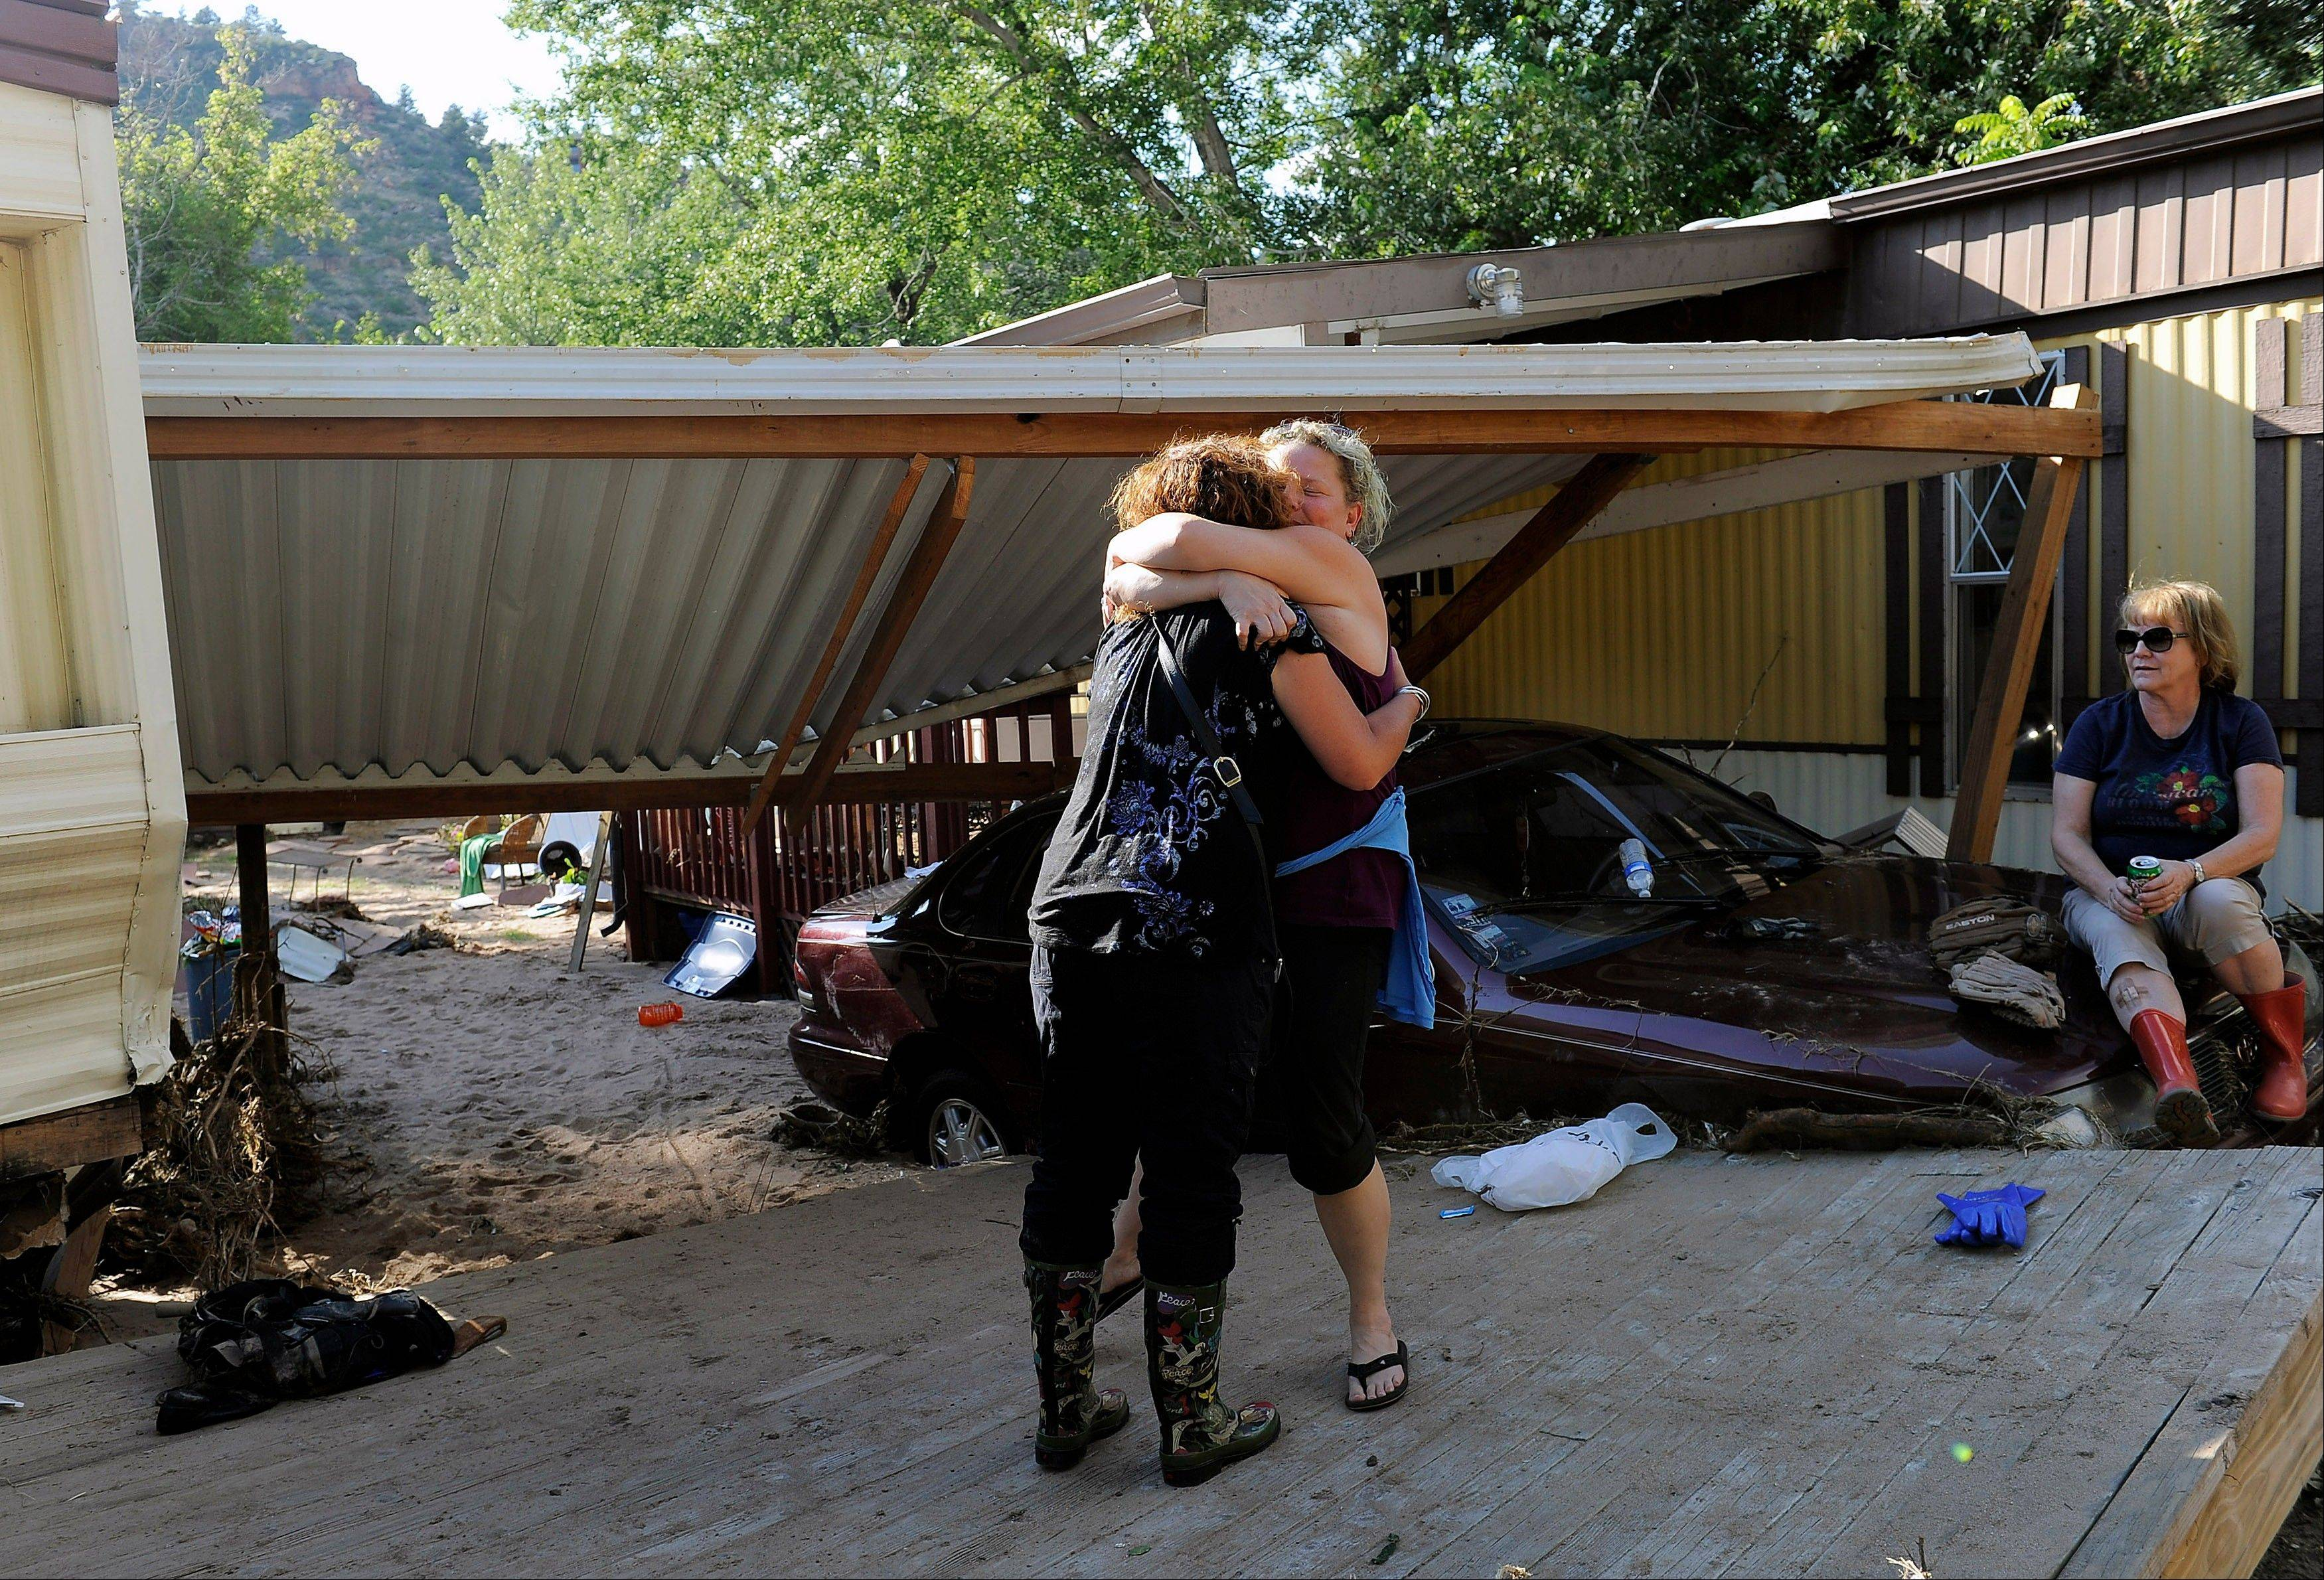 Molly Morton, left, hugs Jenna Brink, center right, outside Brink�s flood-damaged trailer at the River Bend Mobile Home Park in Lyons, Colo., as Brink�s mother, Christine Brink takes a break from clearing belongings from the trailer on Thursday, Sept. 19, 2013. Hundreds of evacuees were allowed past National Guard roadblocks Thursday to find a scene of tangled power lines, downed utility poles, and mud-caked homes and vehicles.